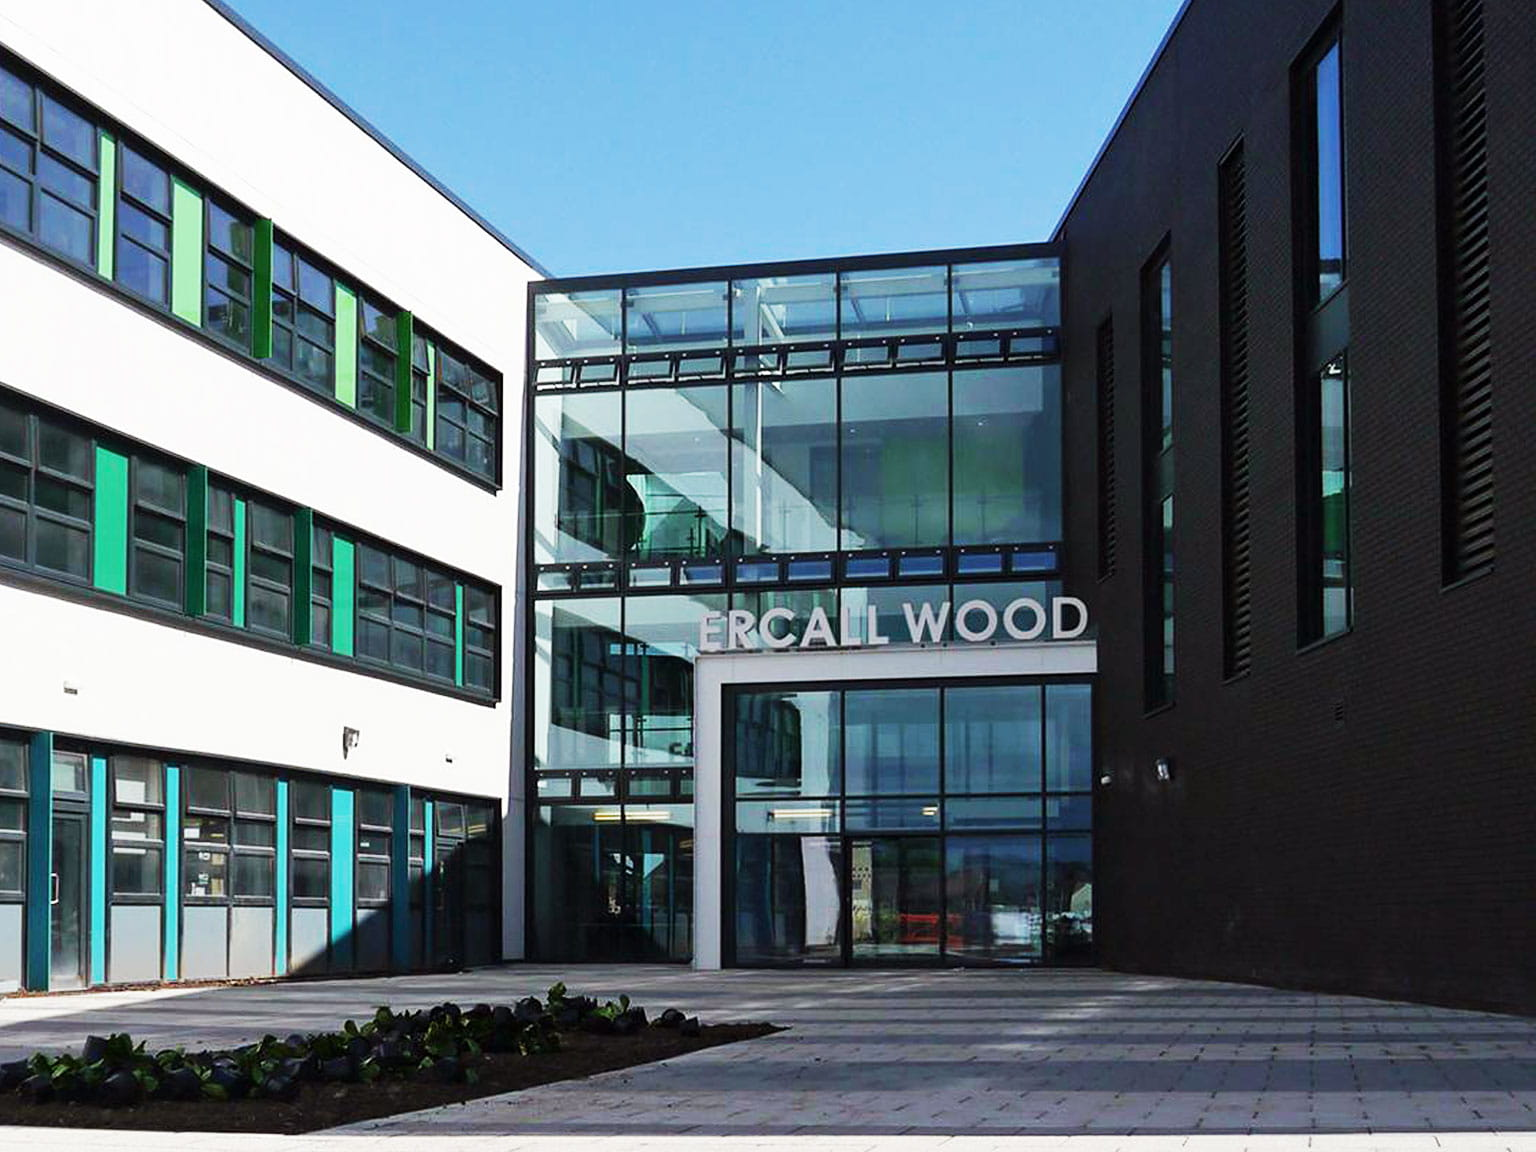 Ercall Wood College